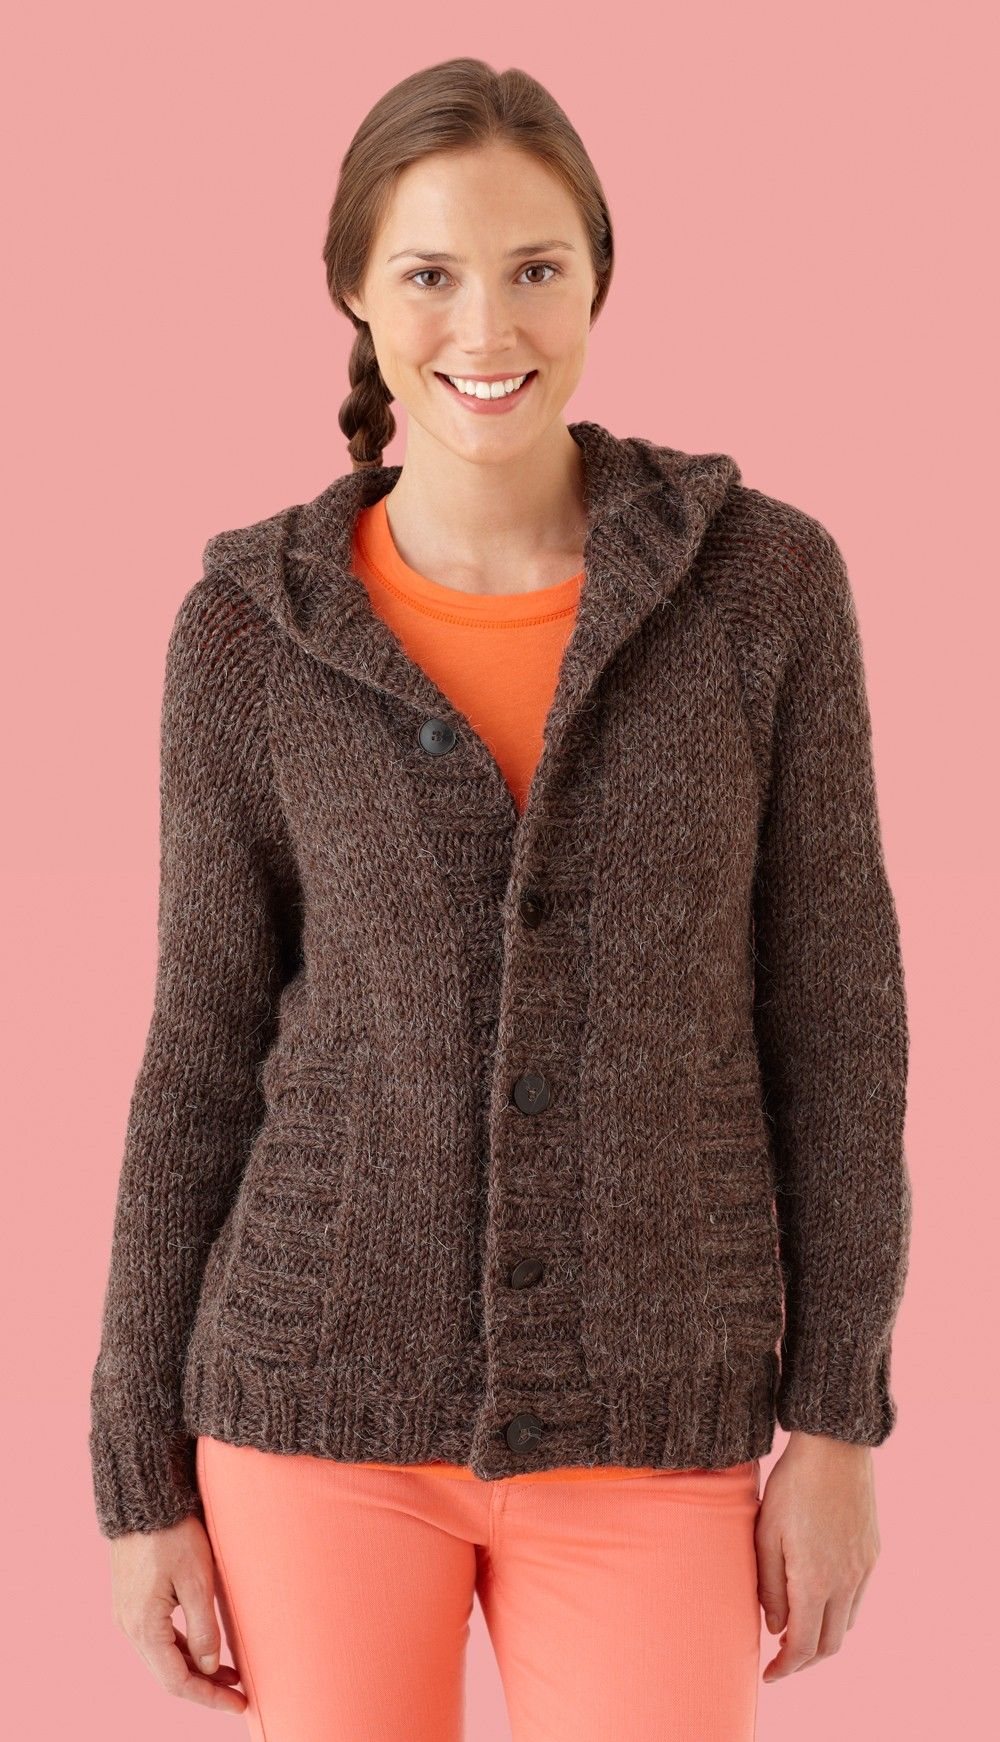 Hooded Cardigan Pattern (Knit) - Free Download | Crafting ...